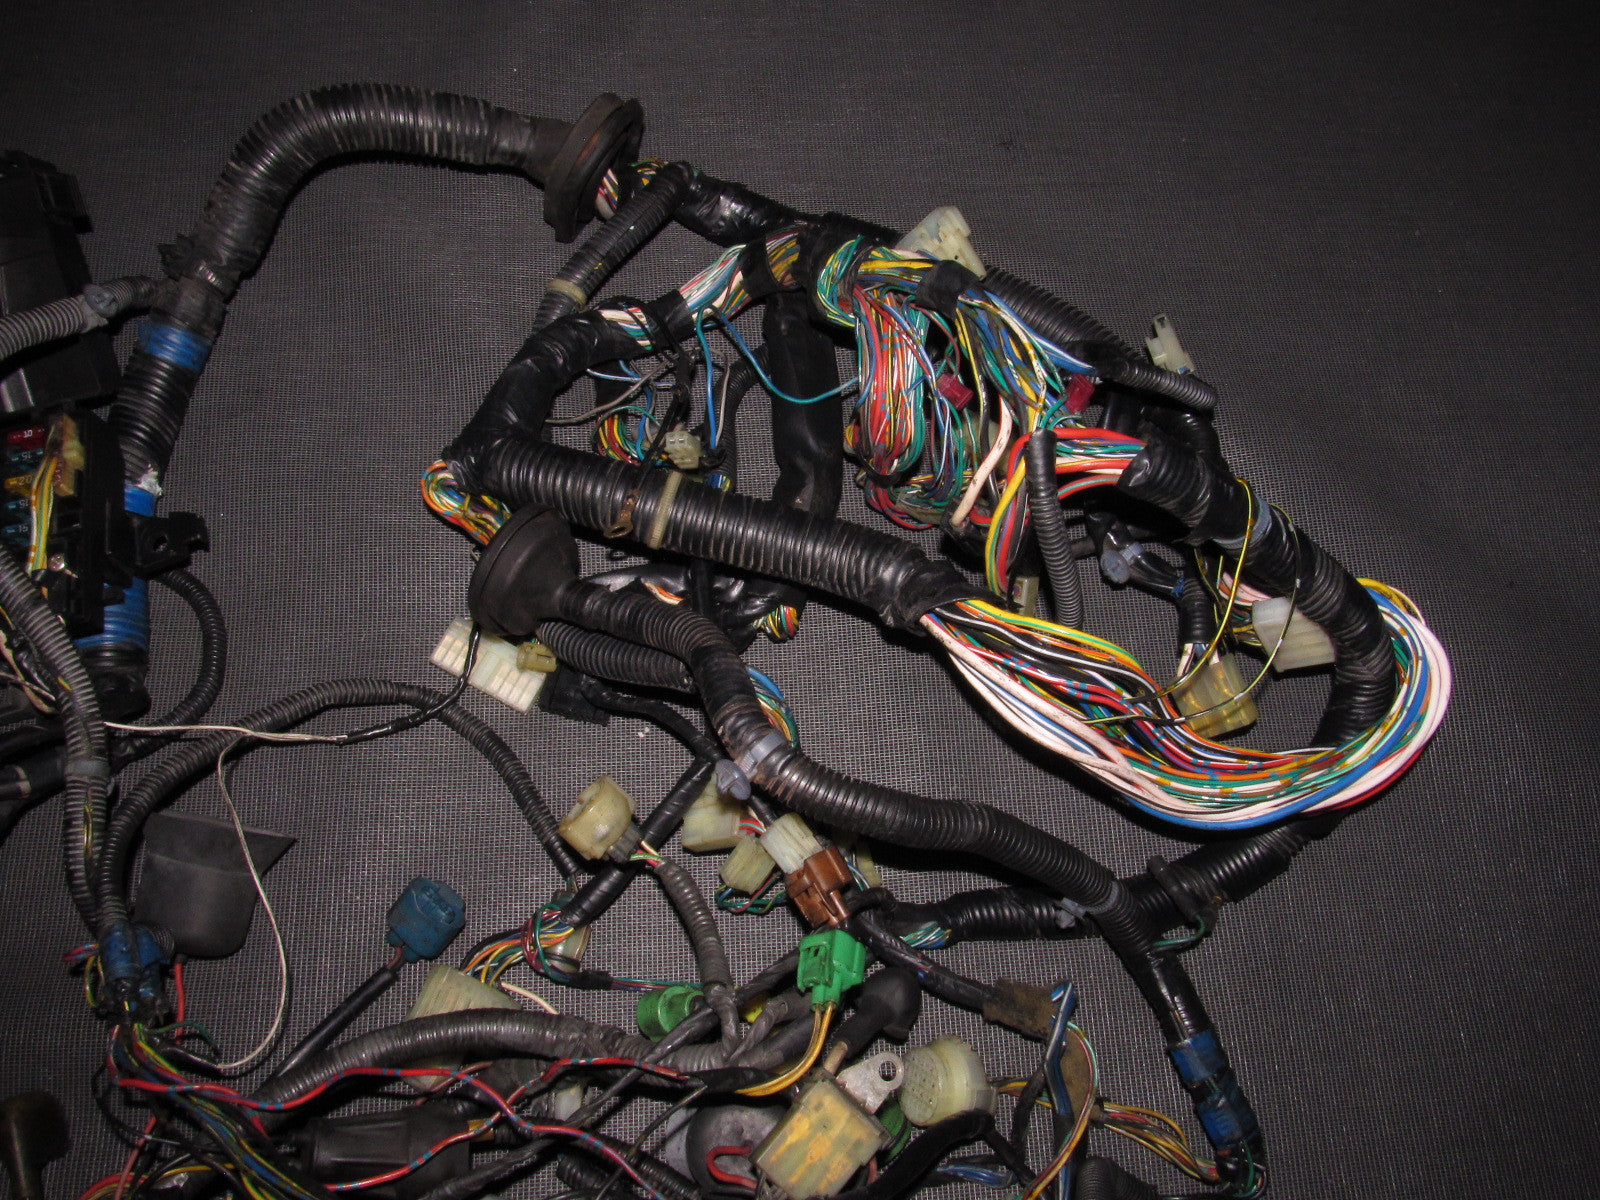 on d15b wire harness